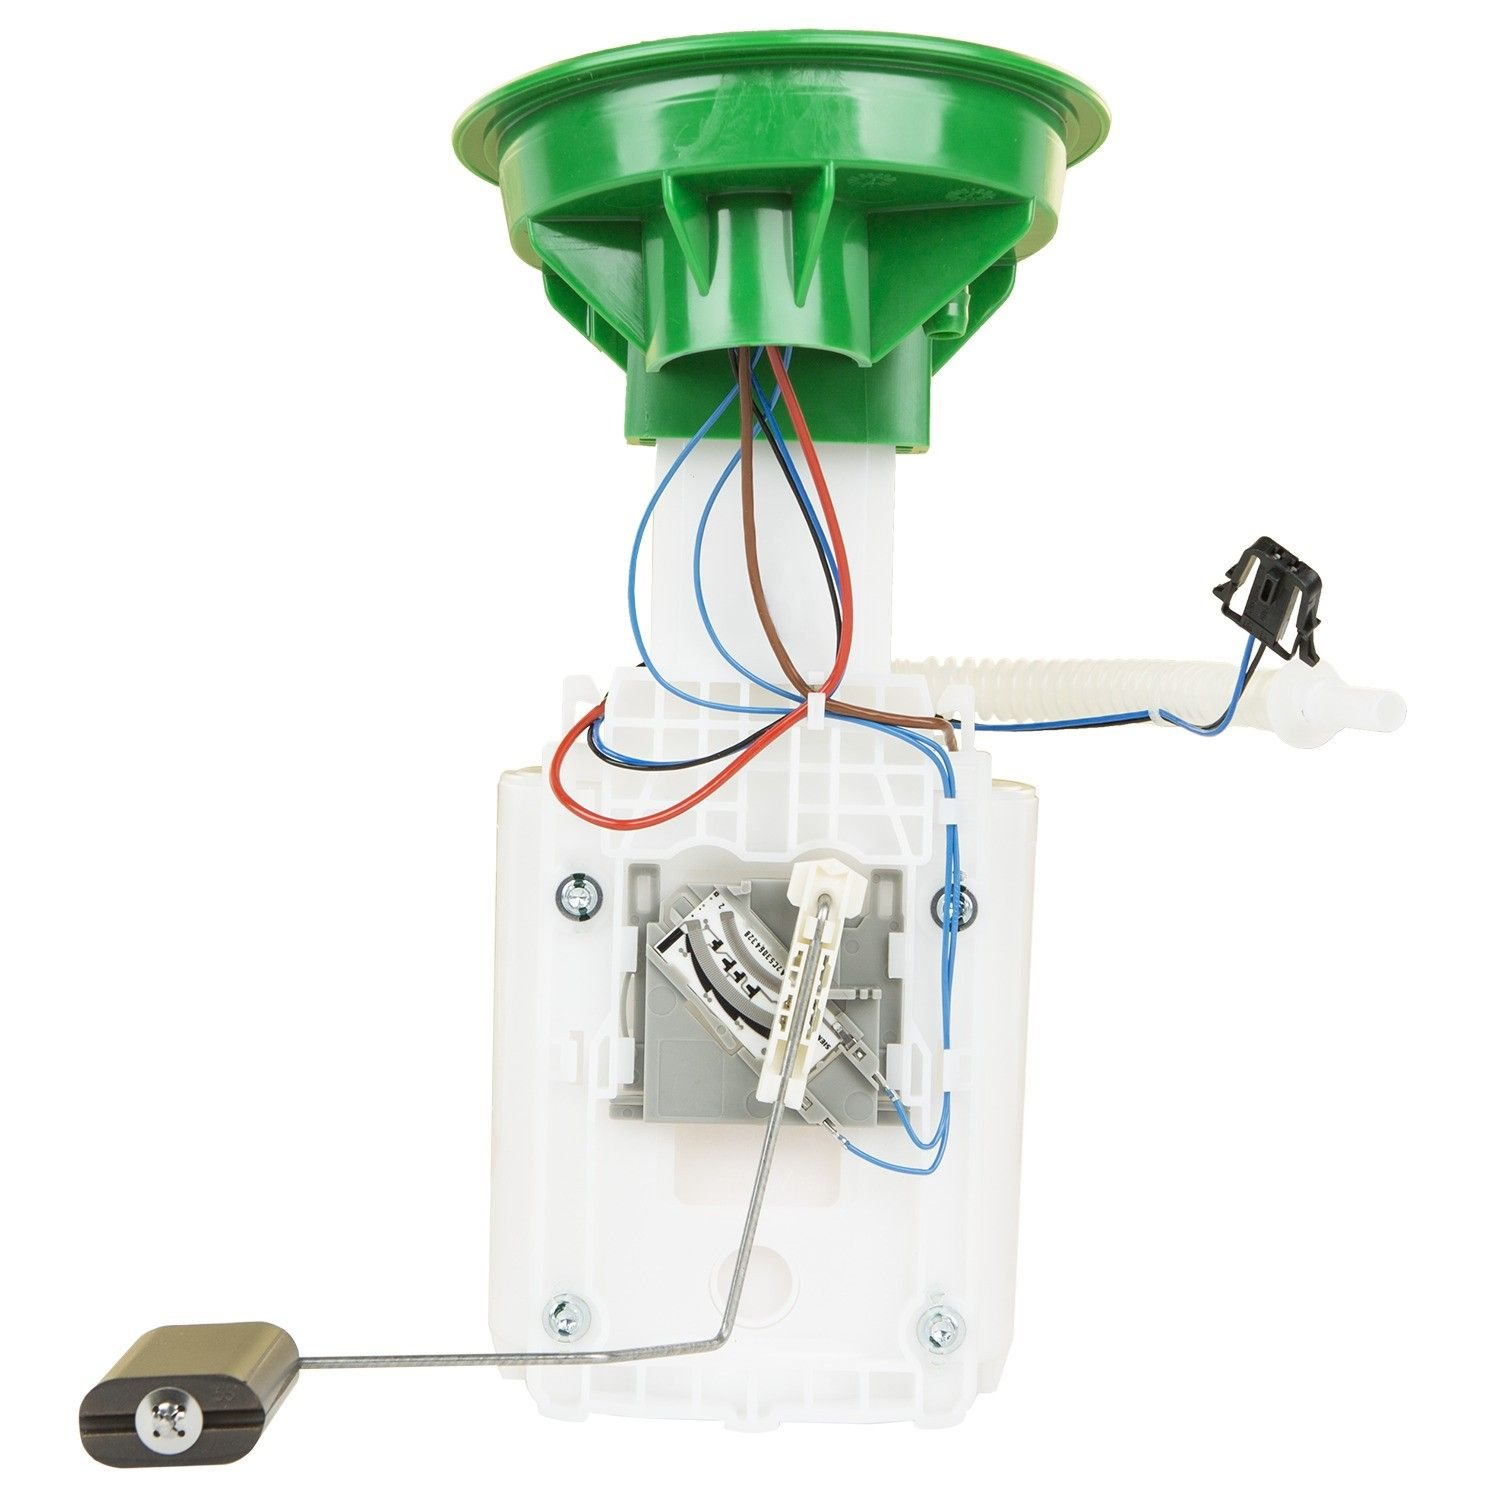 2005 Mini Cooper Fuel Pump Module Assembly 4 Cyl 1.6L (Delphi FG1179)  External Strainer Once new fuel module has been installed and fuel tank has  been ...